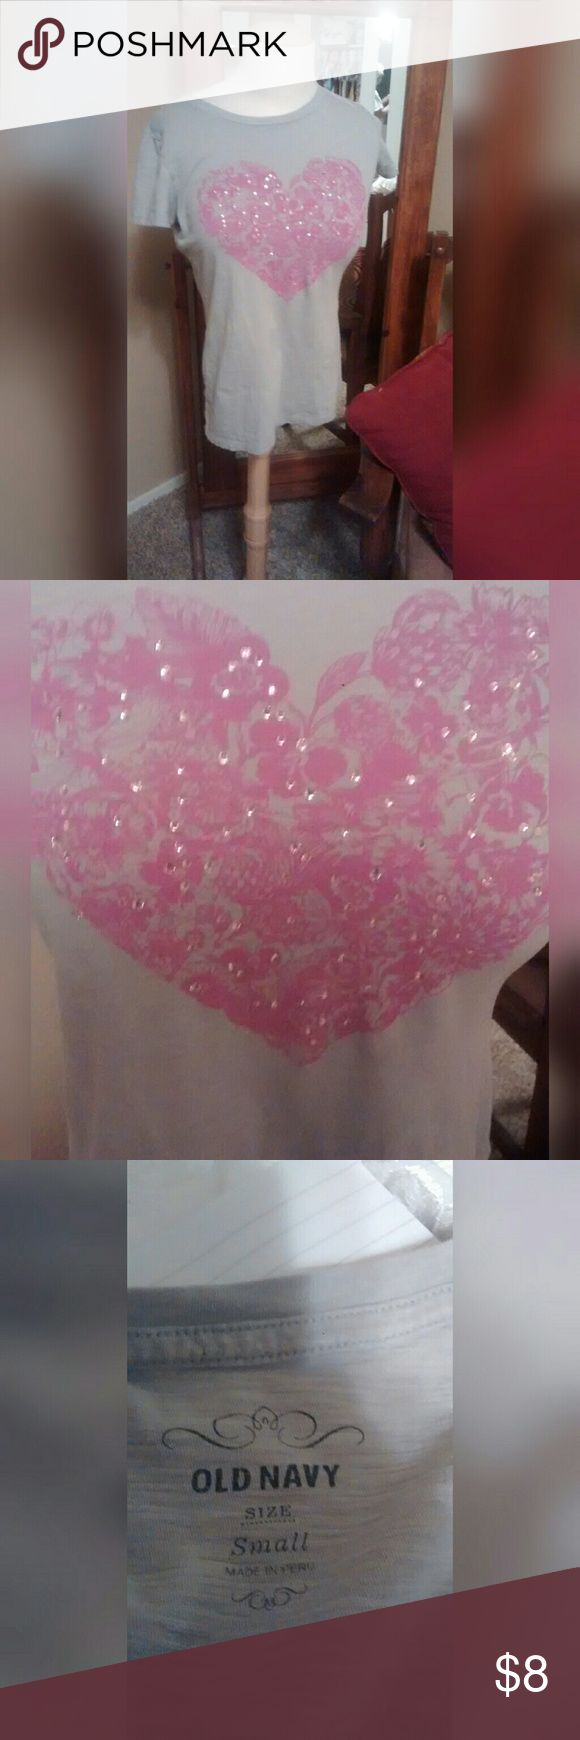 """Old Navy Tee Gray tee with pink heart. And a bit of bling! In excellent used condition. Size Small. Approx 24"""" long from shoulder to hemline. Approx 20"""" wide from pit to pit.  * Accepting most offers * Bundle and save! * Fast next day shipping!! Old Navy Tops Tees - Short Sleeve"""